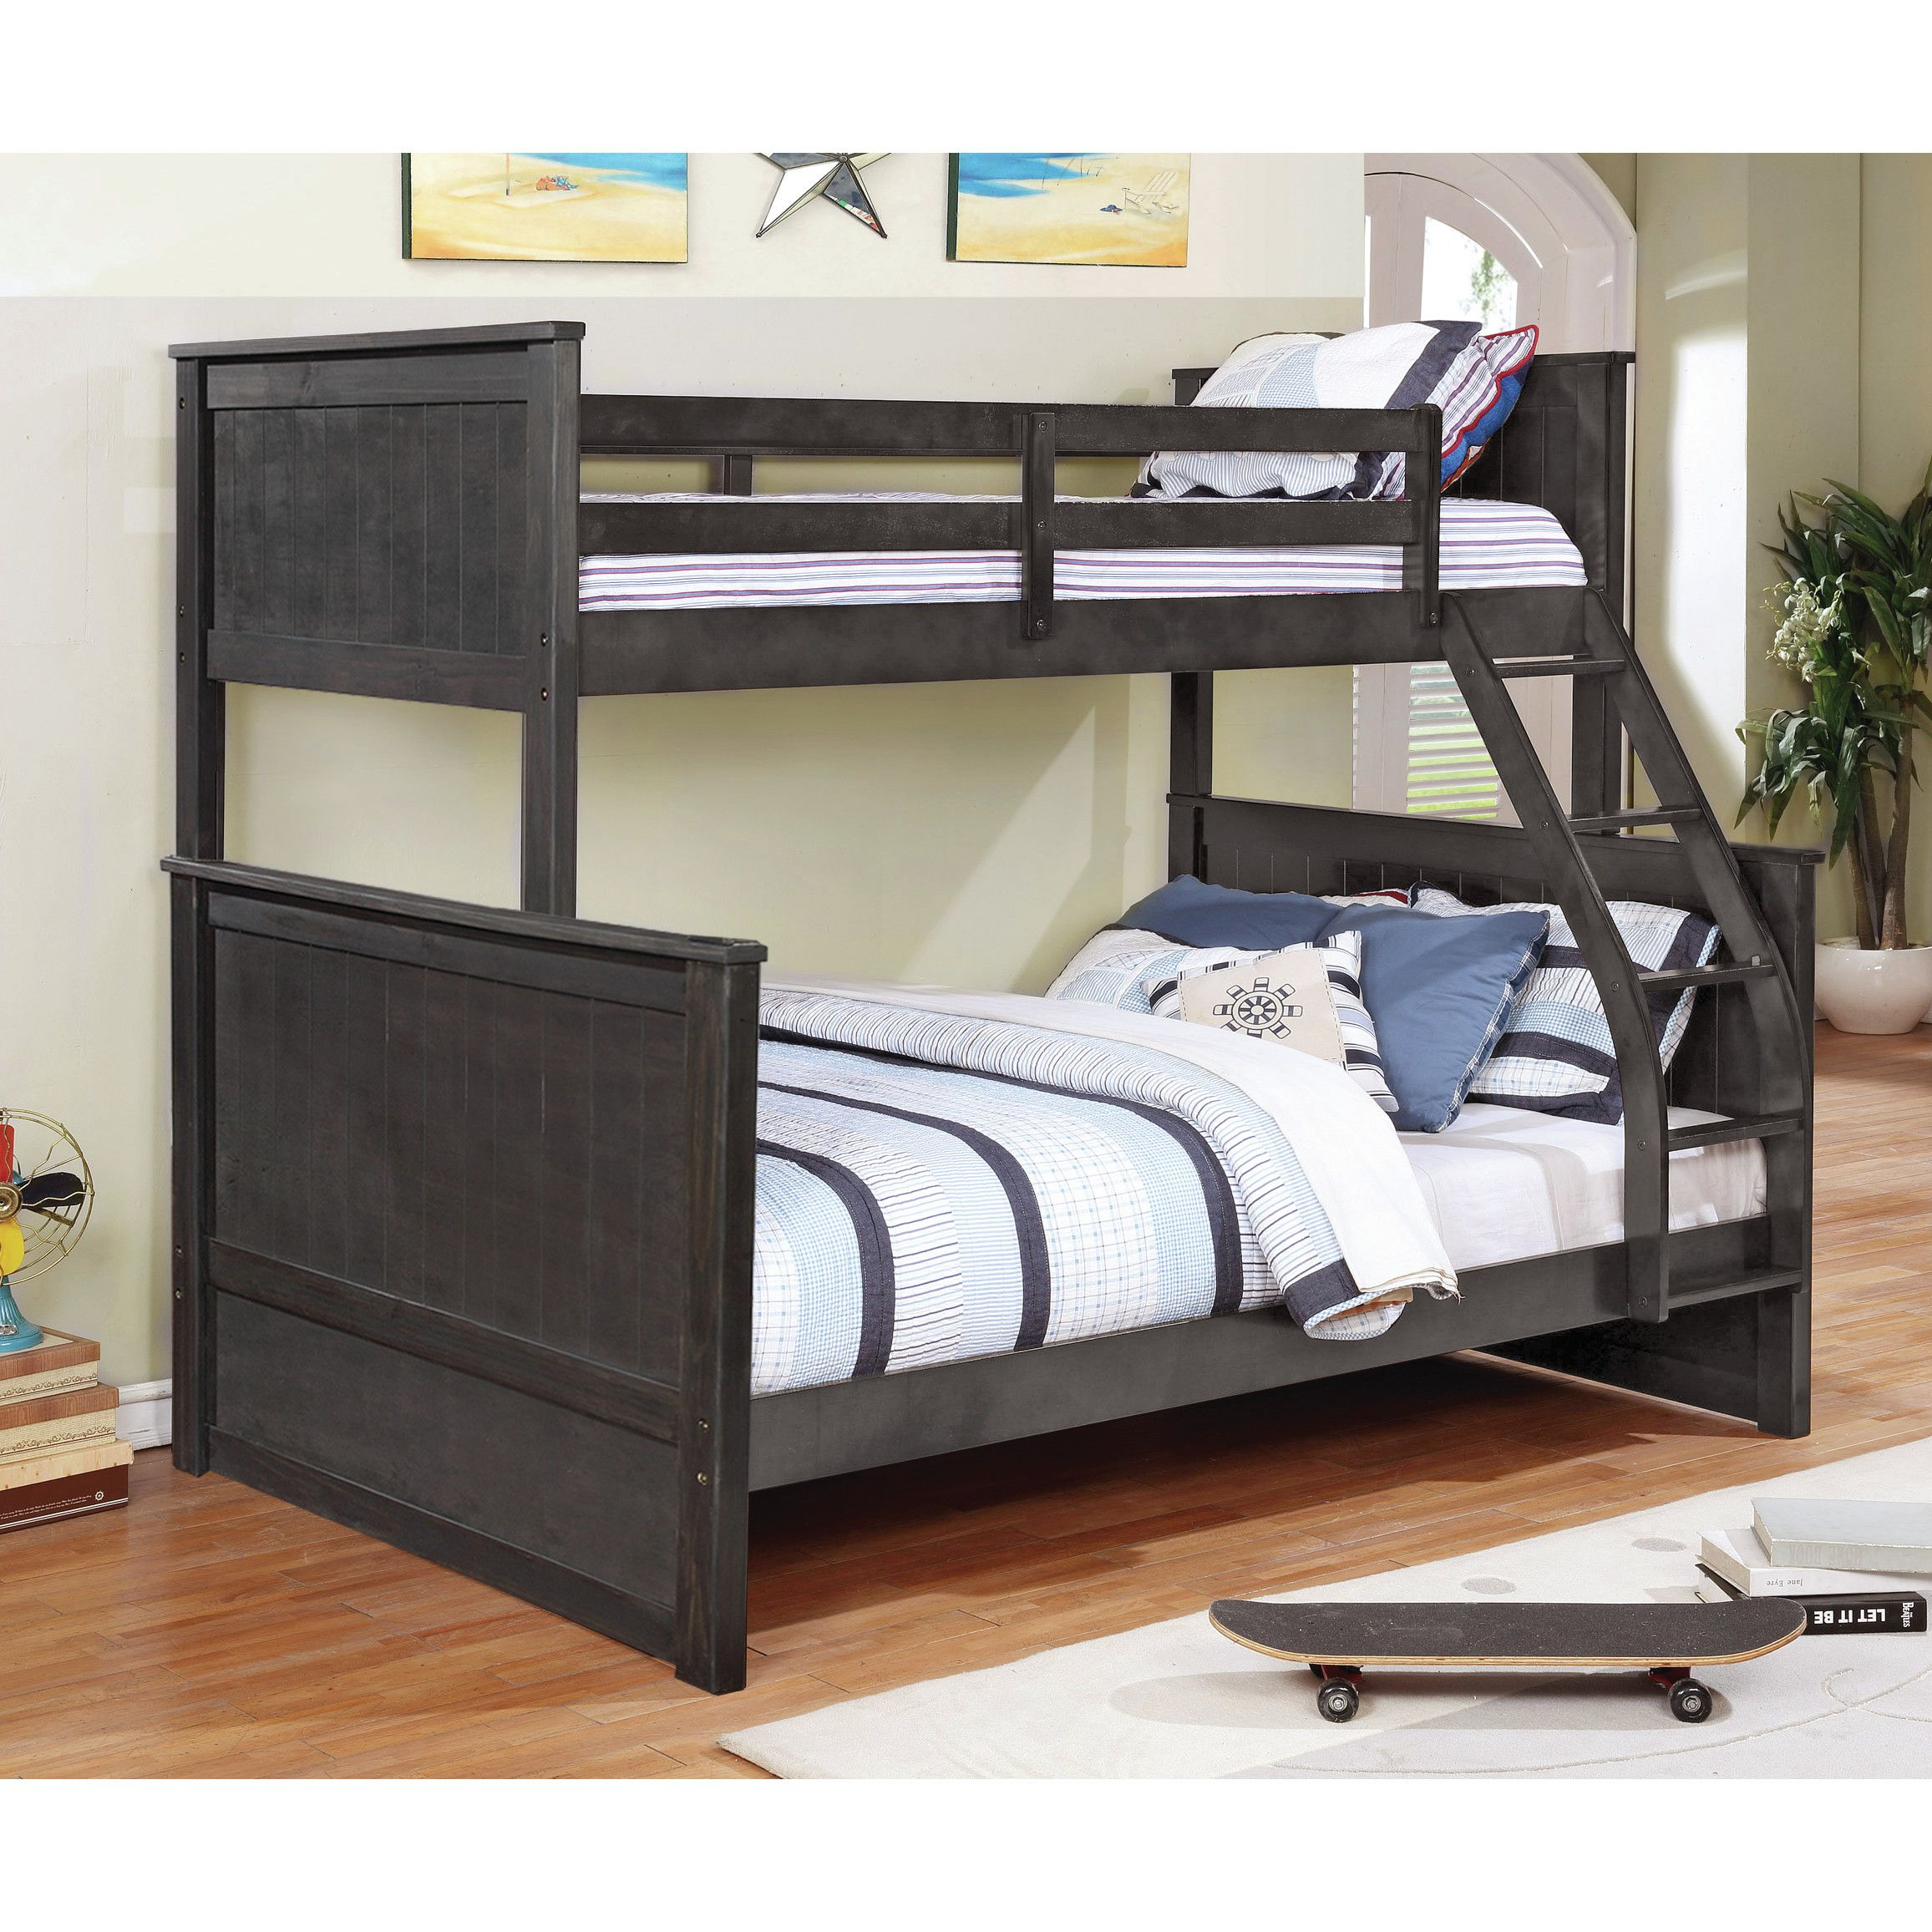 Twin over full loft bed with stairs  Customer Image Zoomed  ATL House  Pinterest  Loft bunk beds Bunk